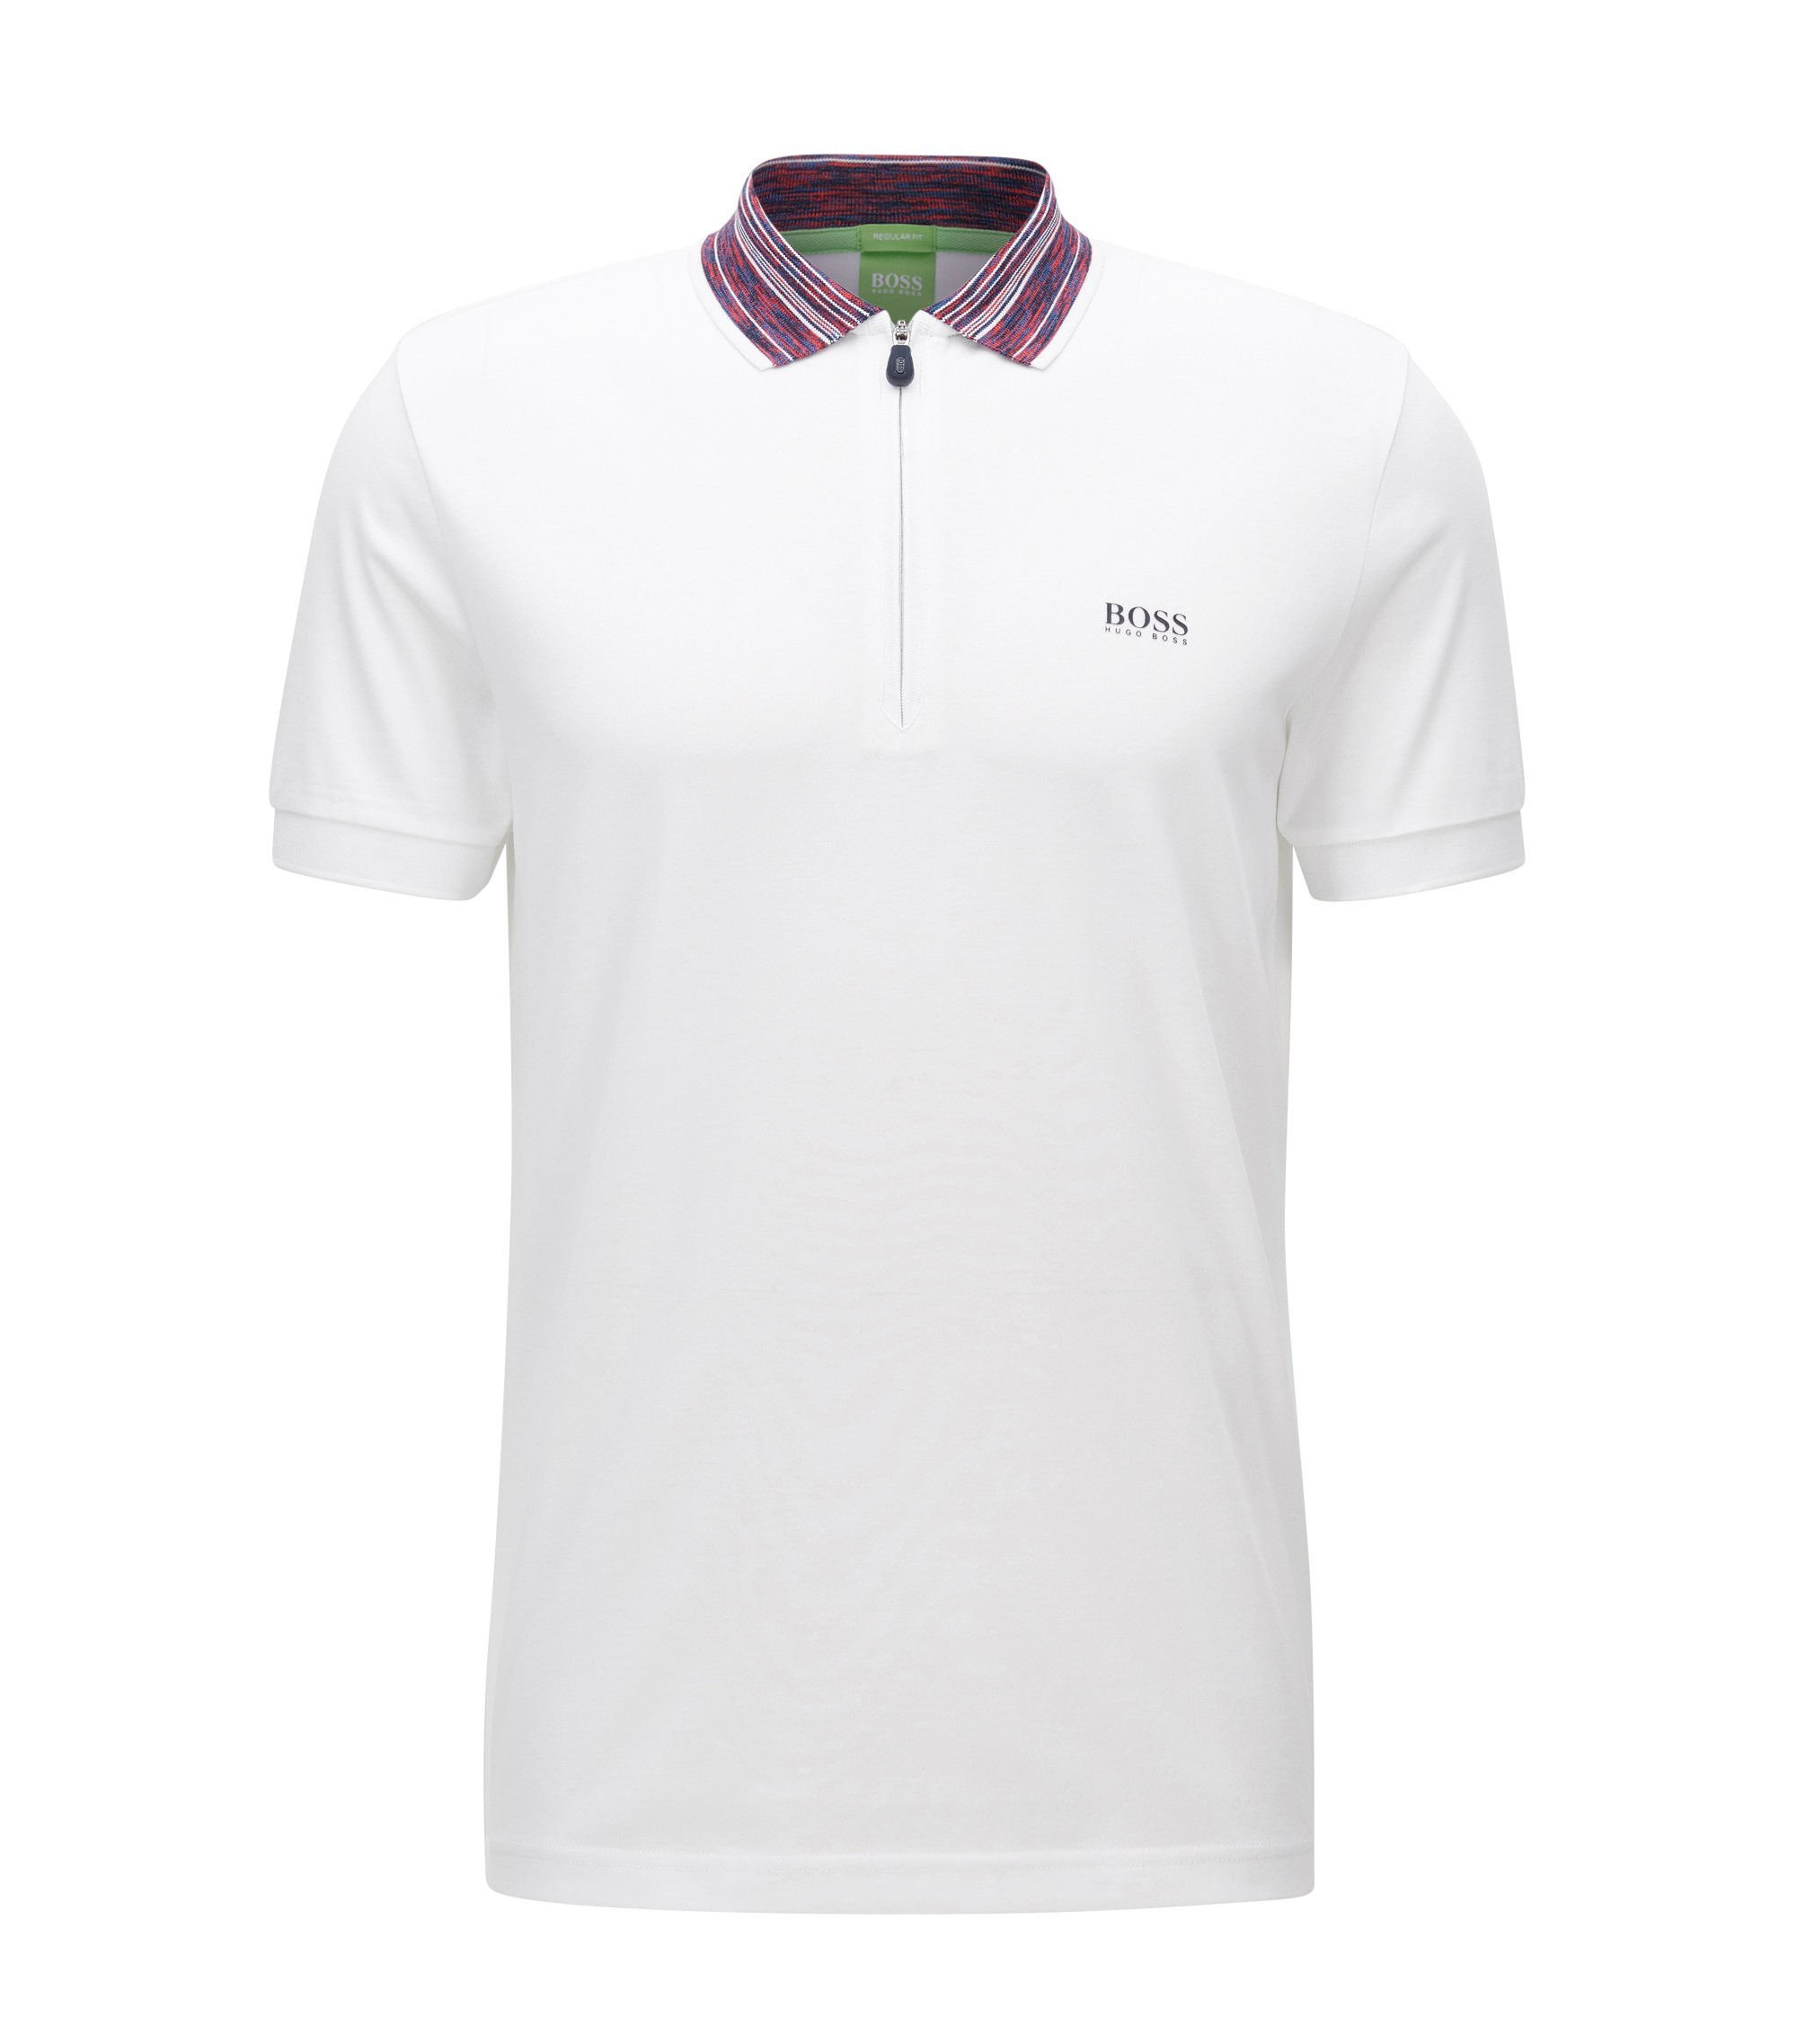 Cotton Blend Contrast Stripe Polo Shirt, Modern Fit | Philix, White